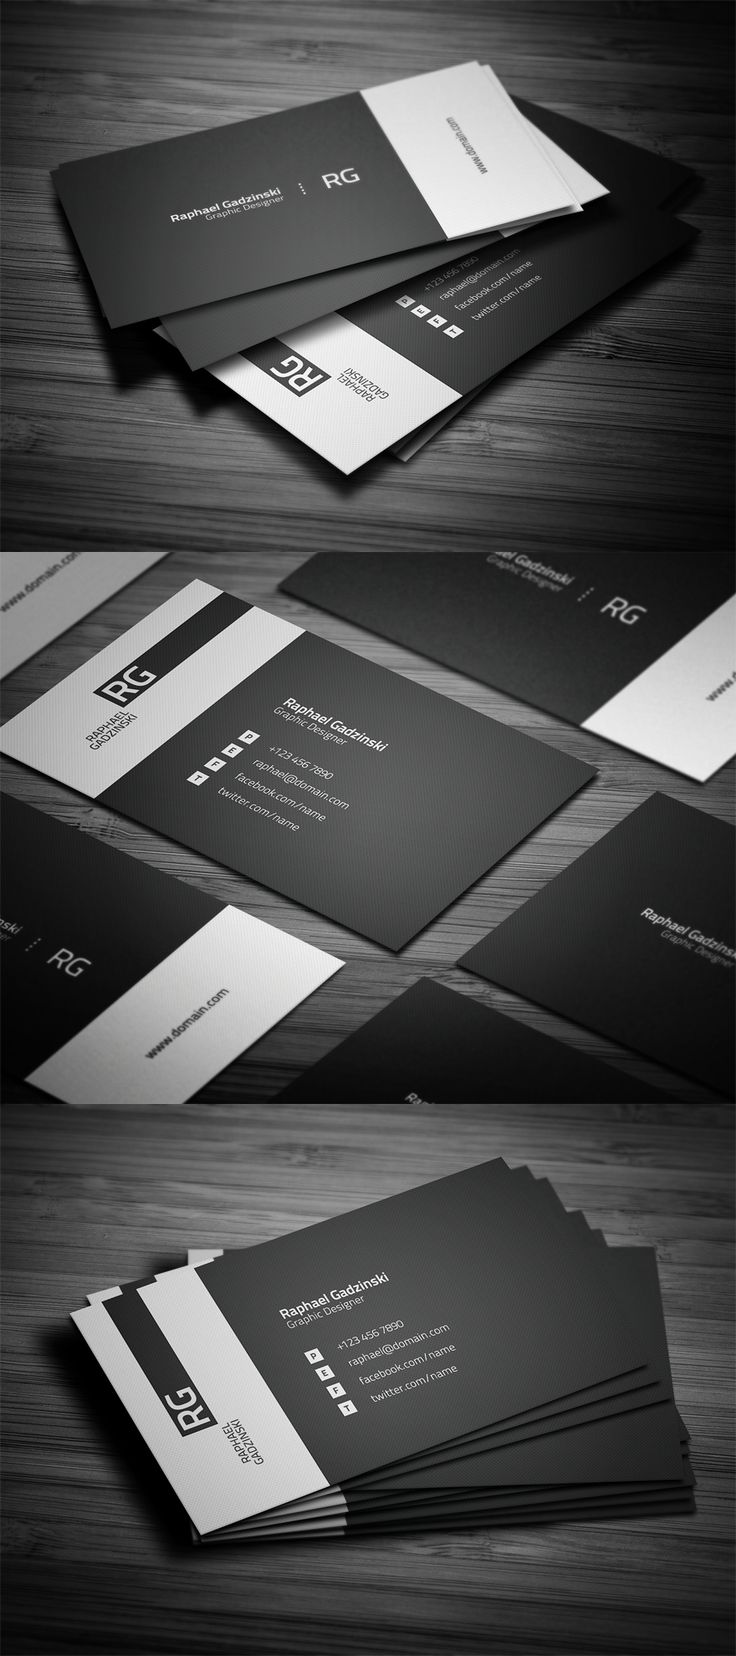 Simple Business Card - Business Cards on Creattica: Your source for design inspiration